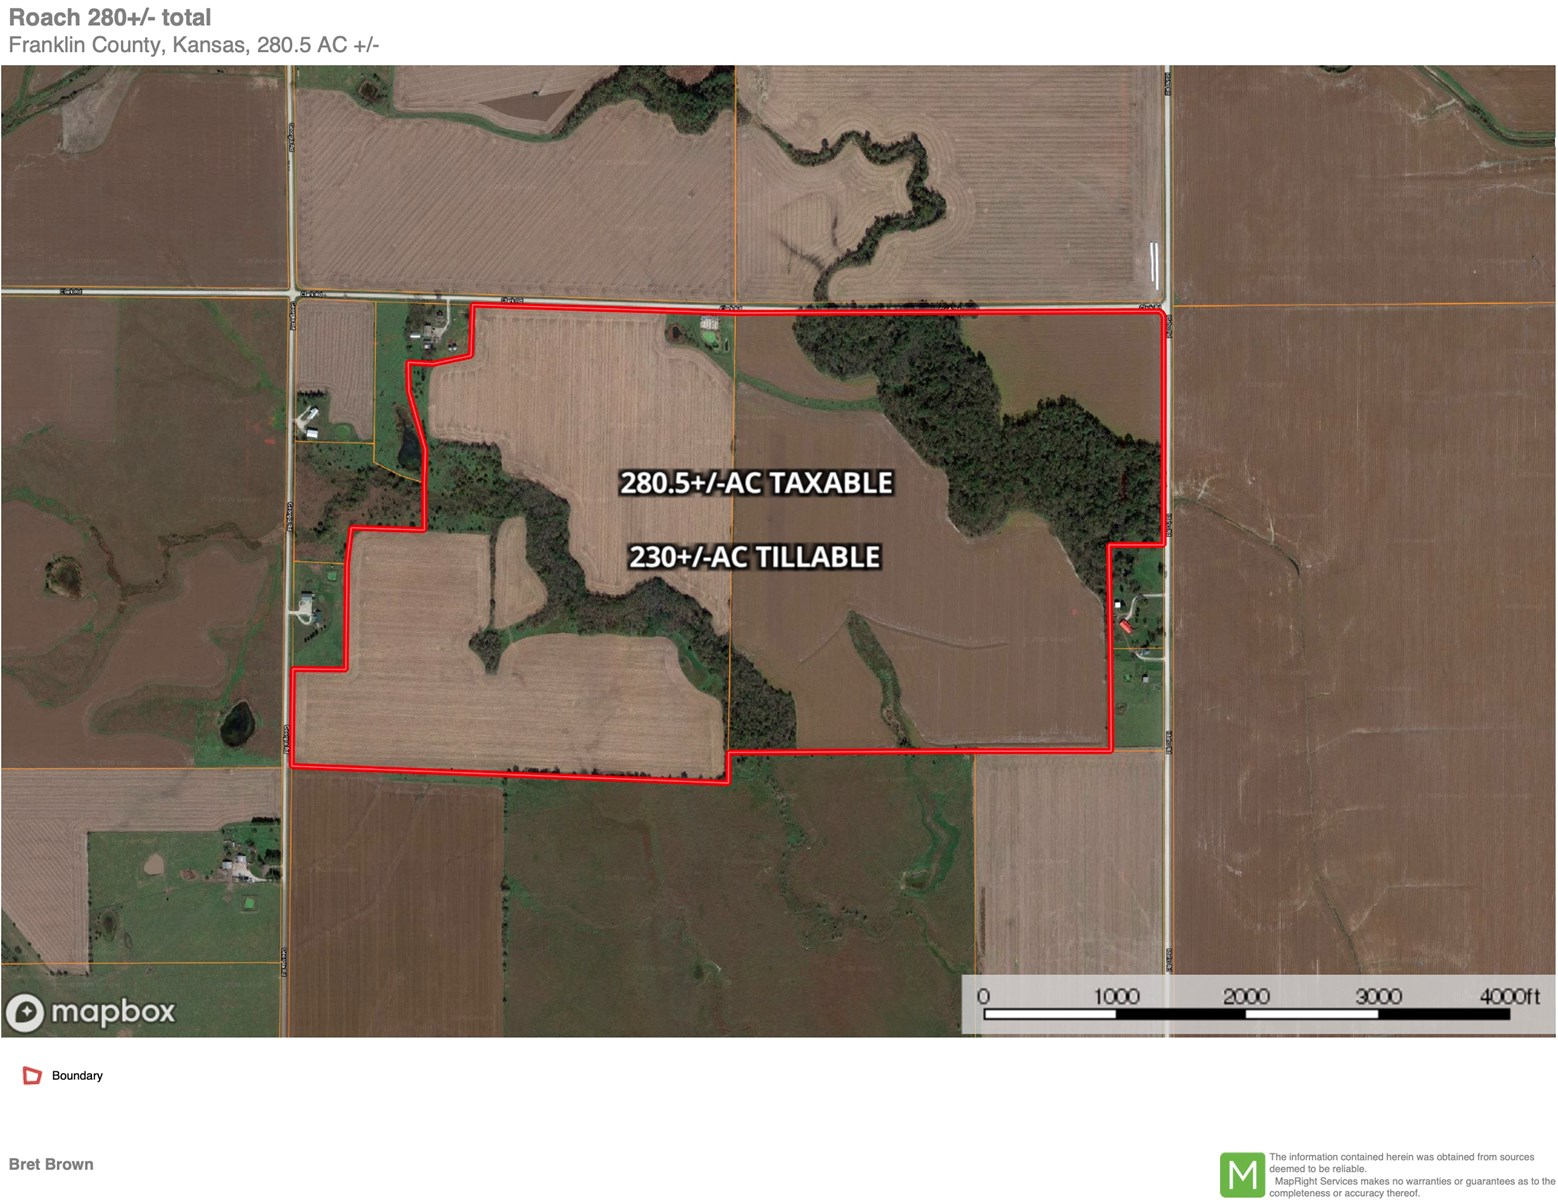 Farm for sale  Franklin County Kansas